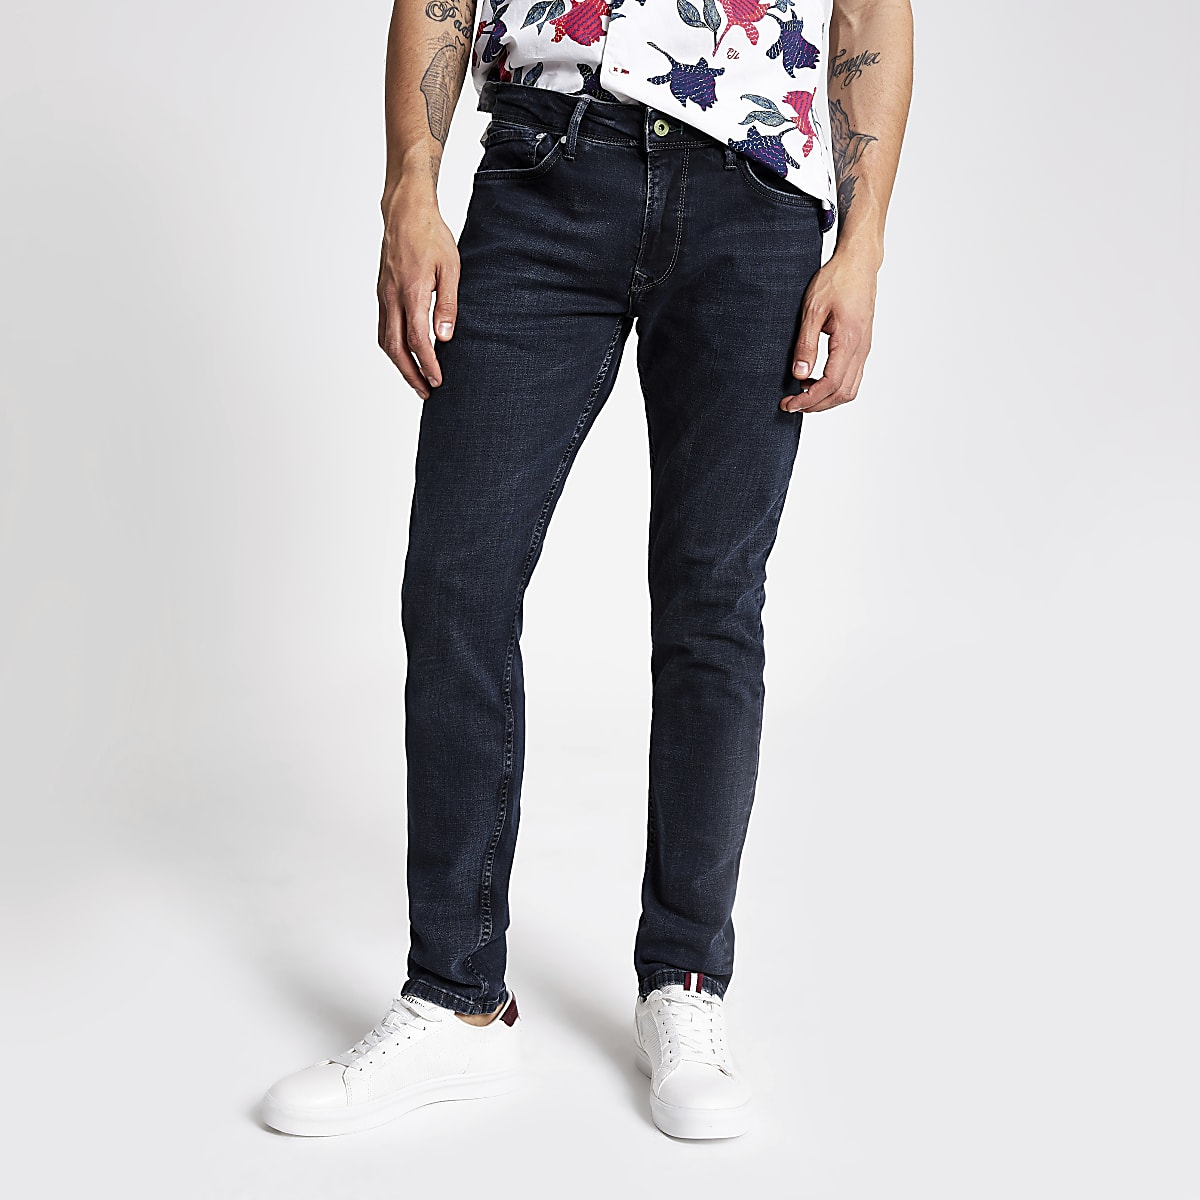 Pepe Jeans black blue skinny jeans